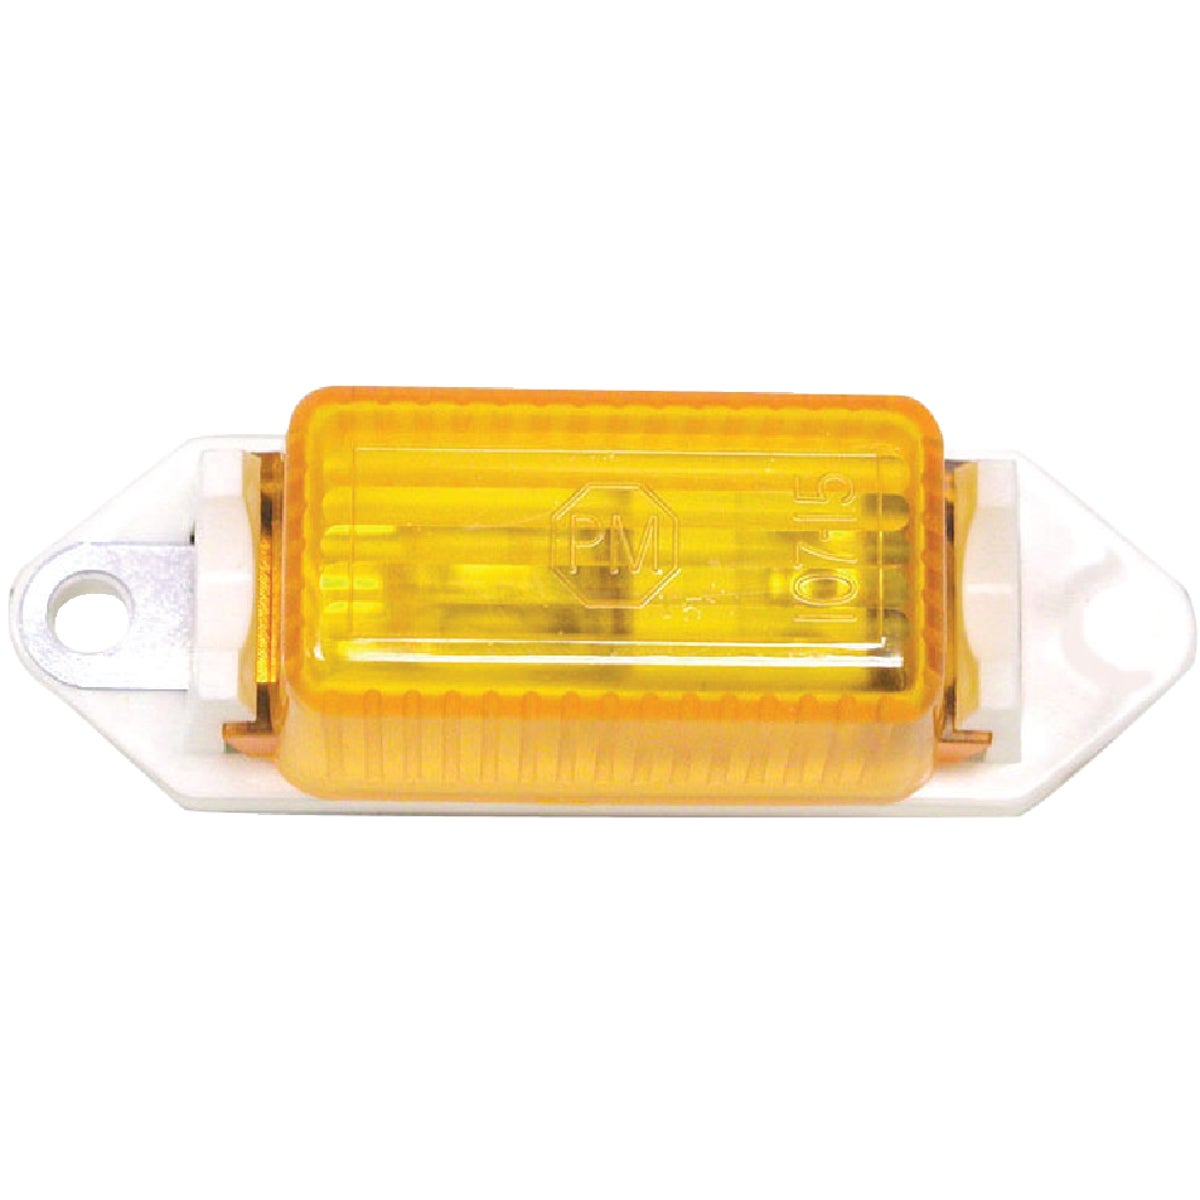 AMBER MARKER LIGHT - V107WA by Peterson Mfg Co